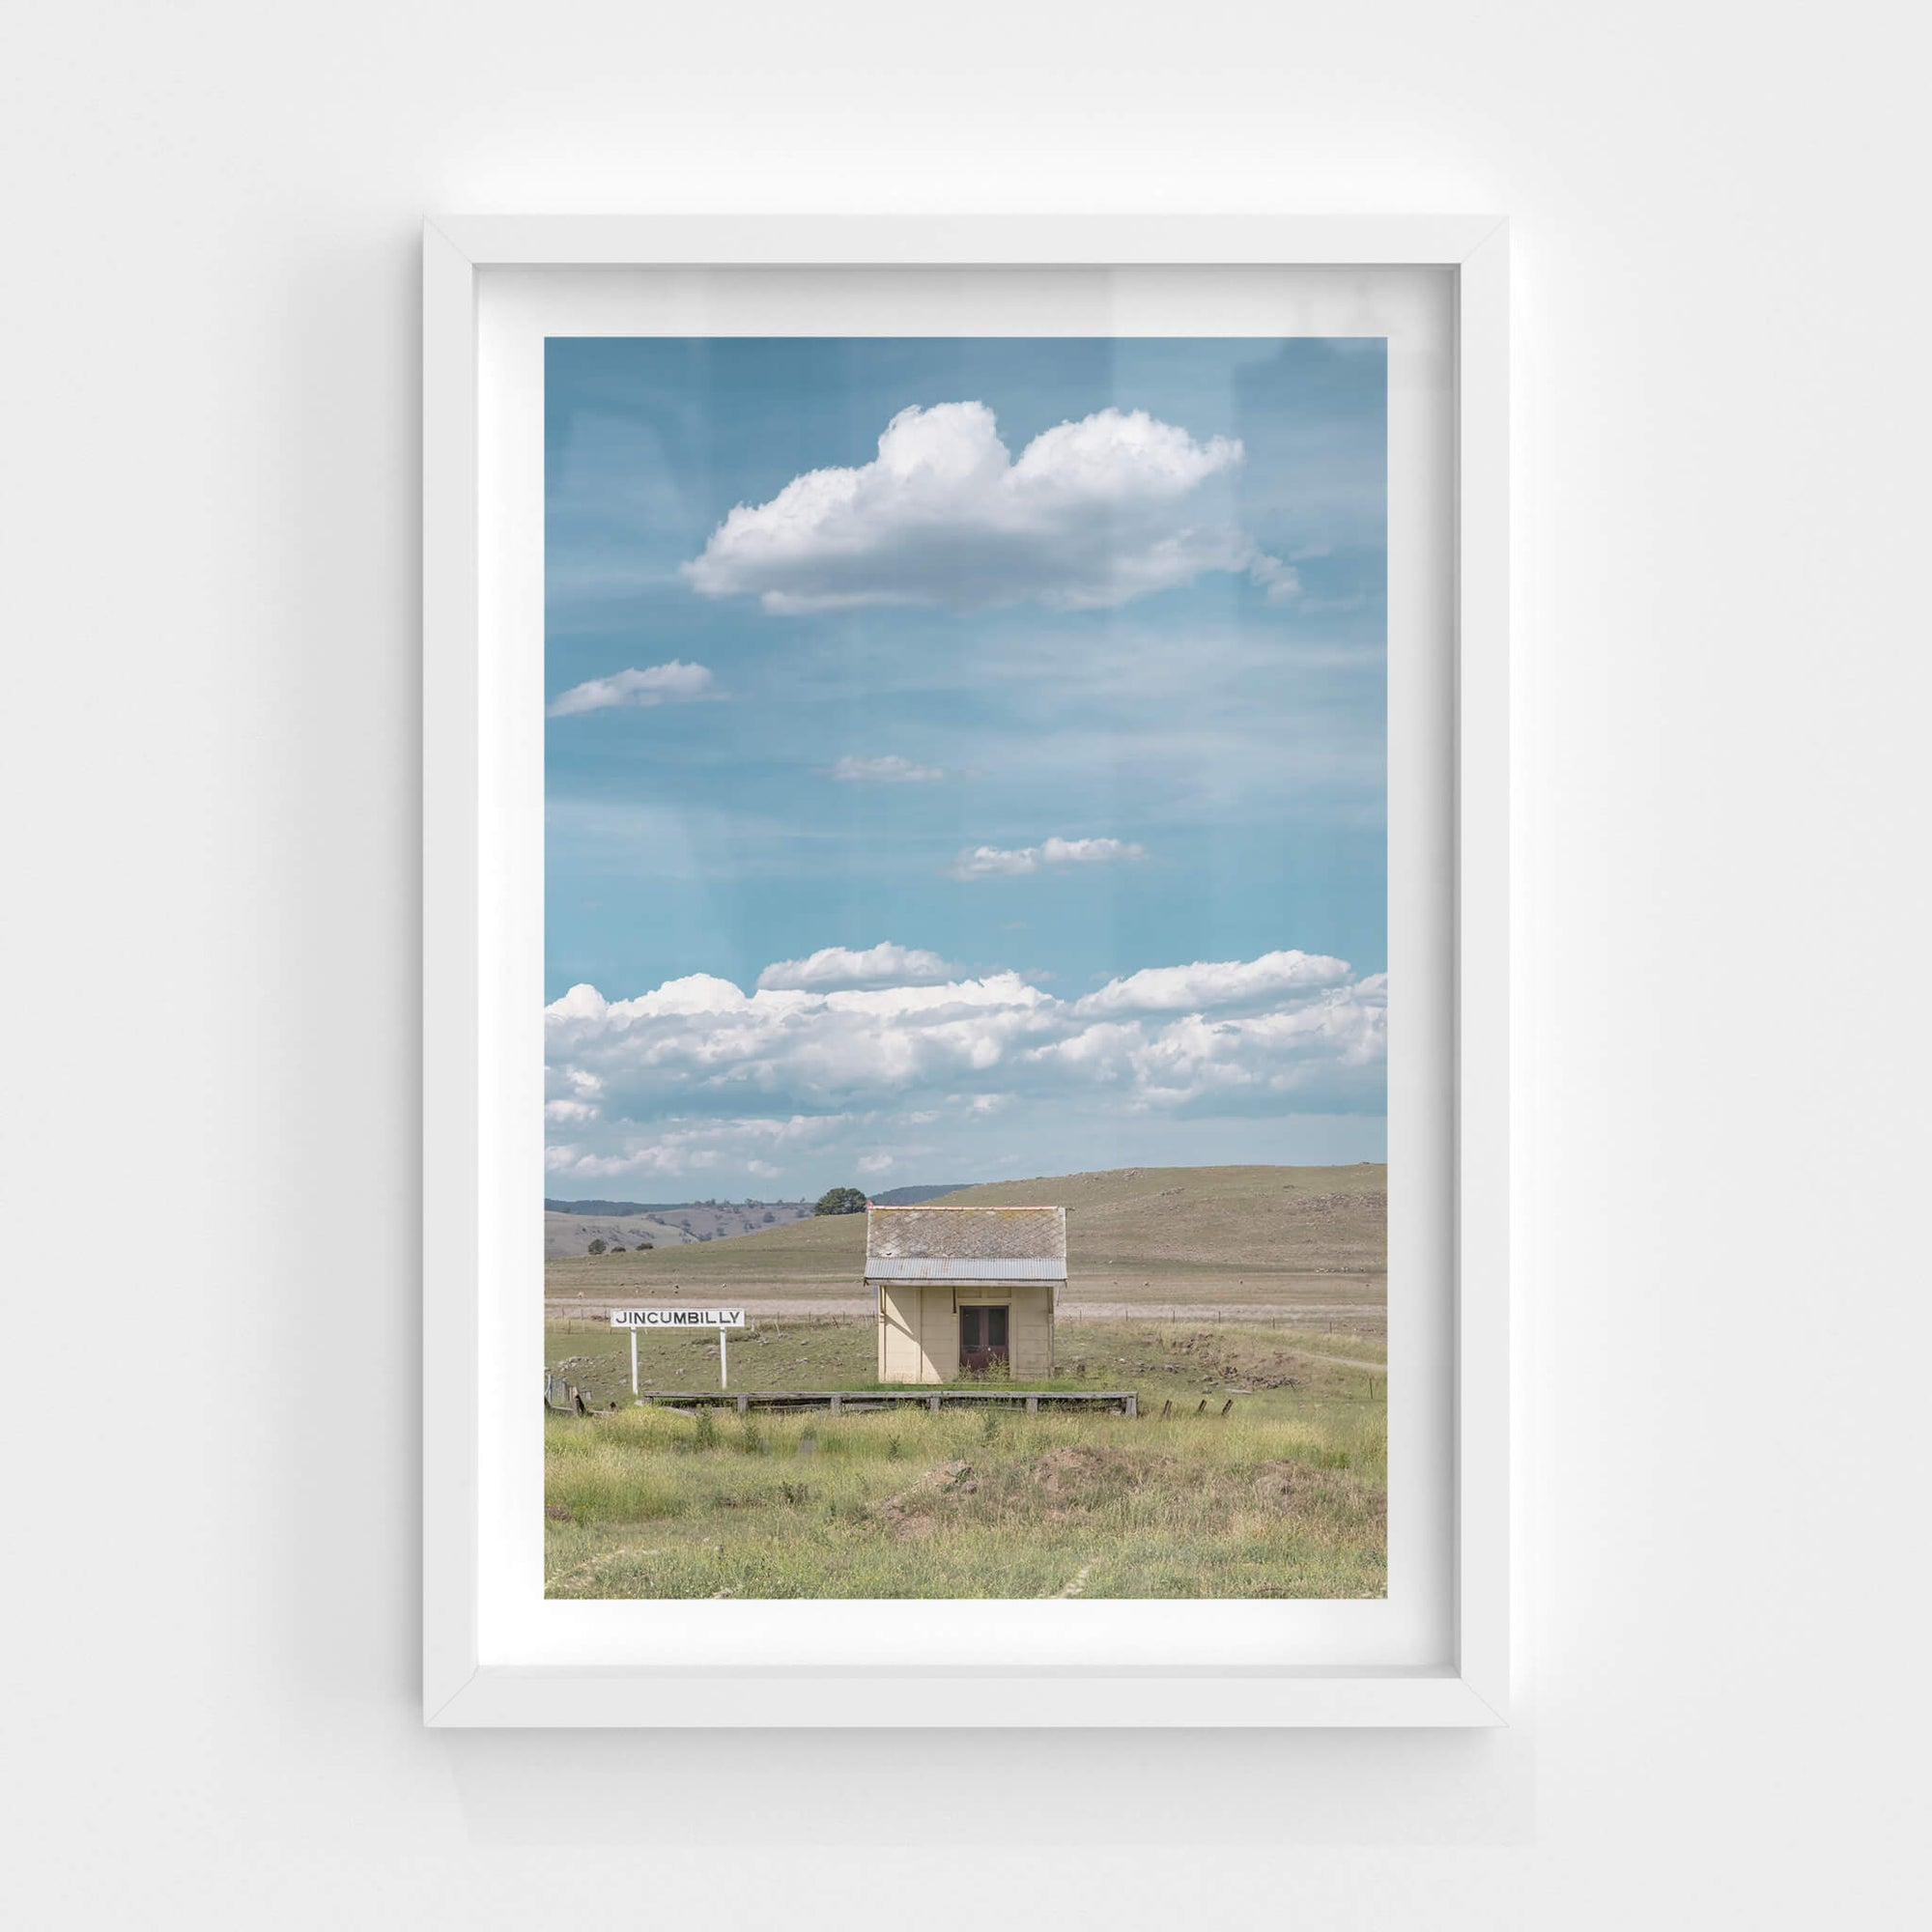 Jincumbilly Station | Landscapes Fine Art Print - Lost Collective Shop